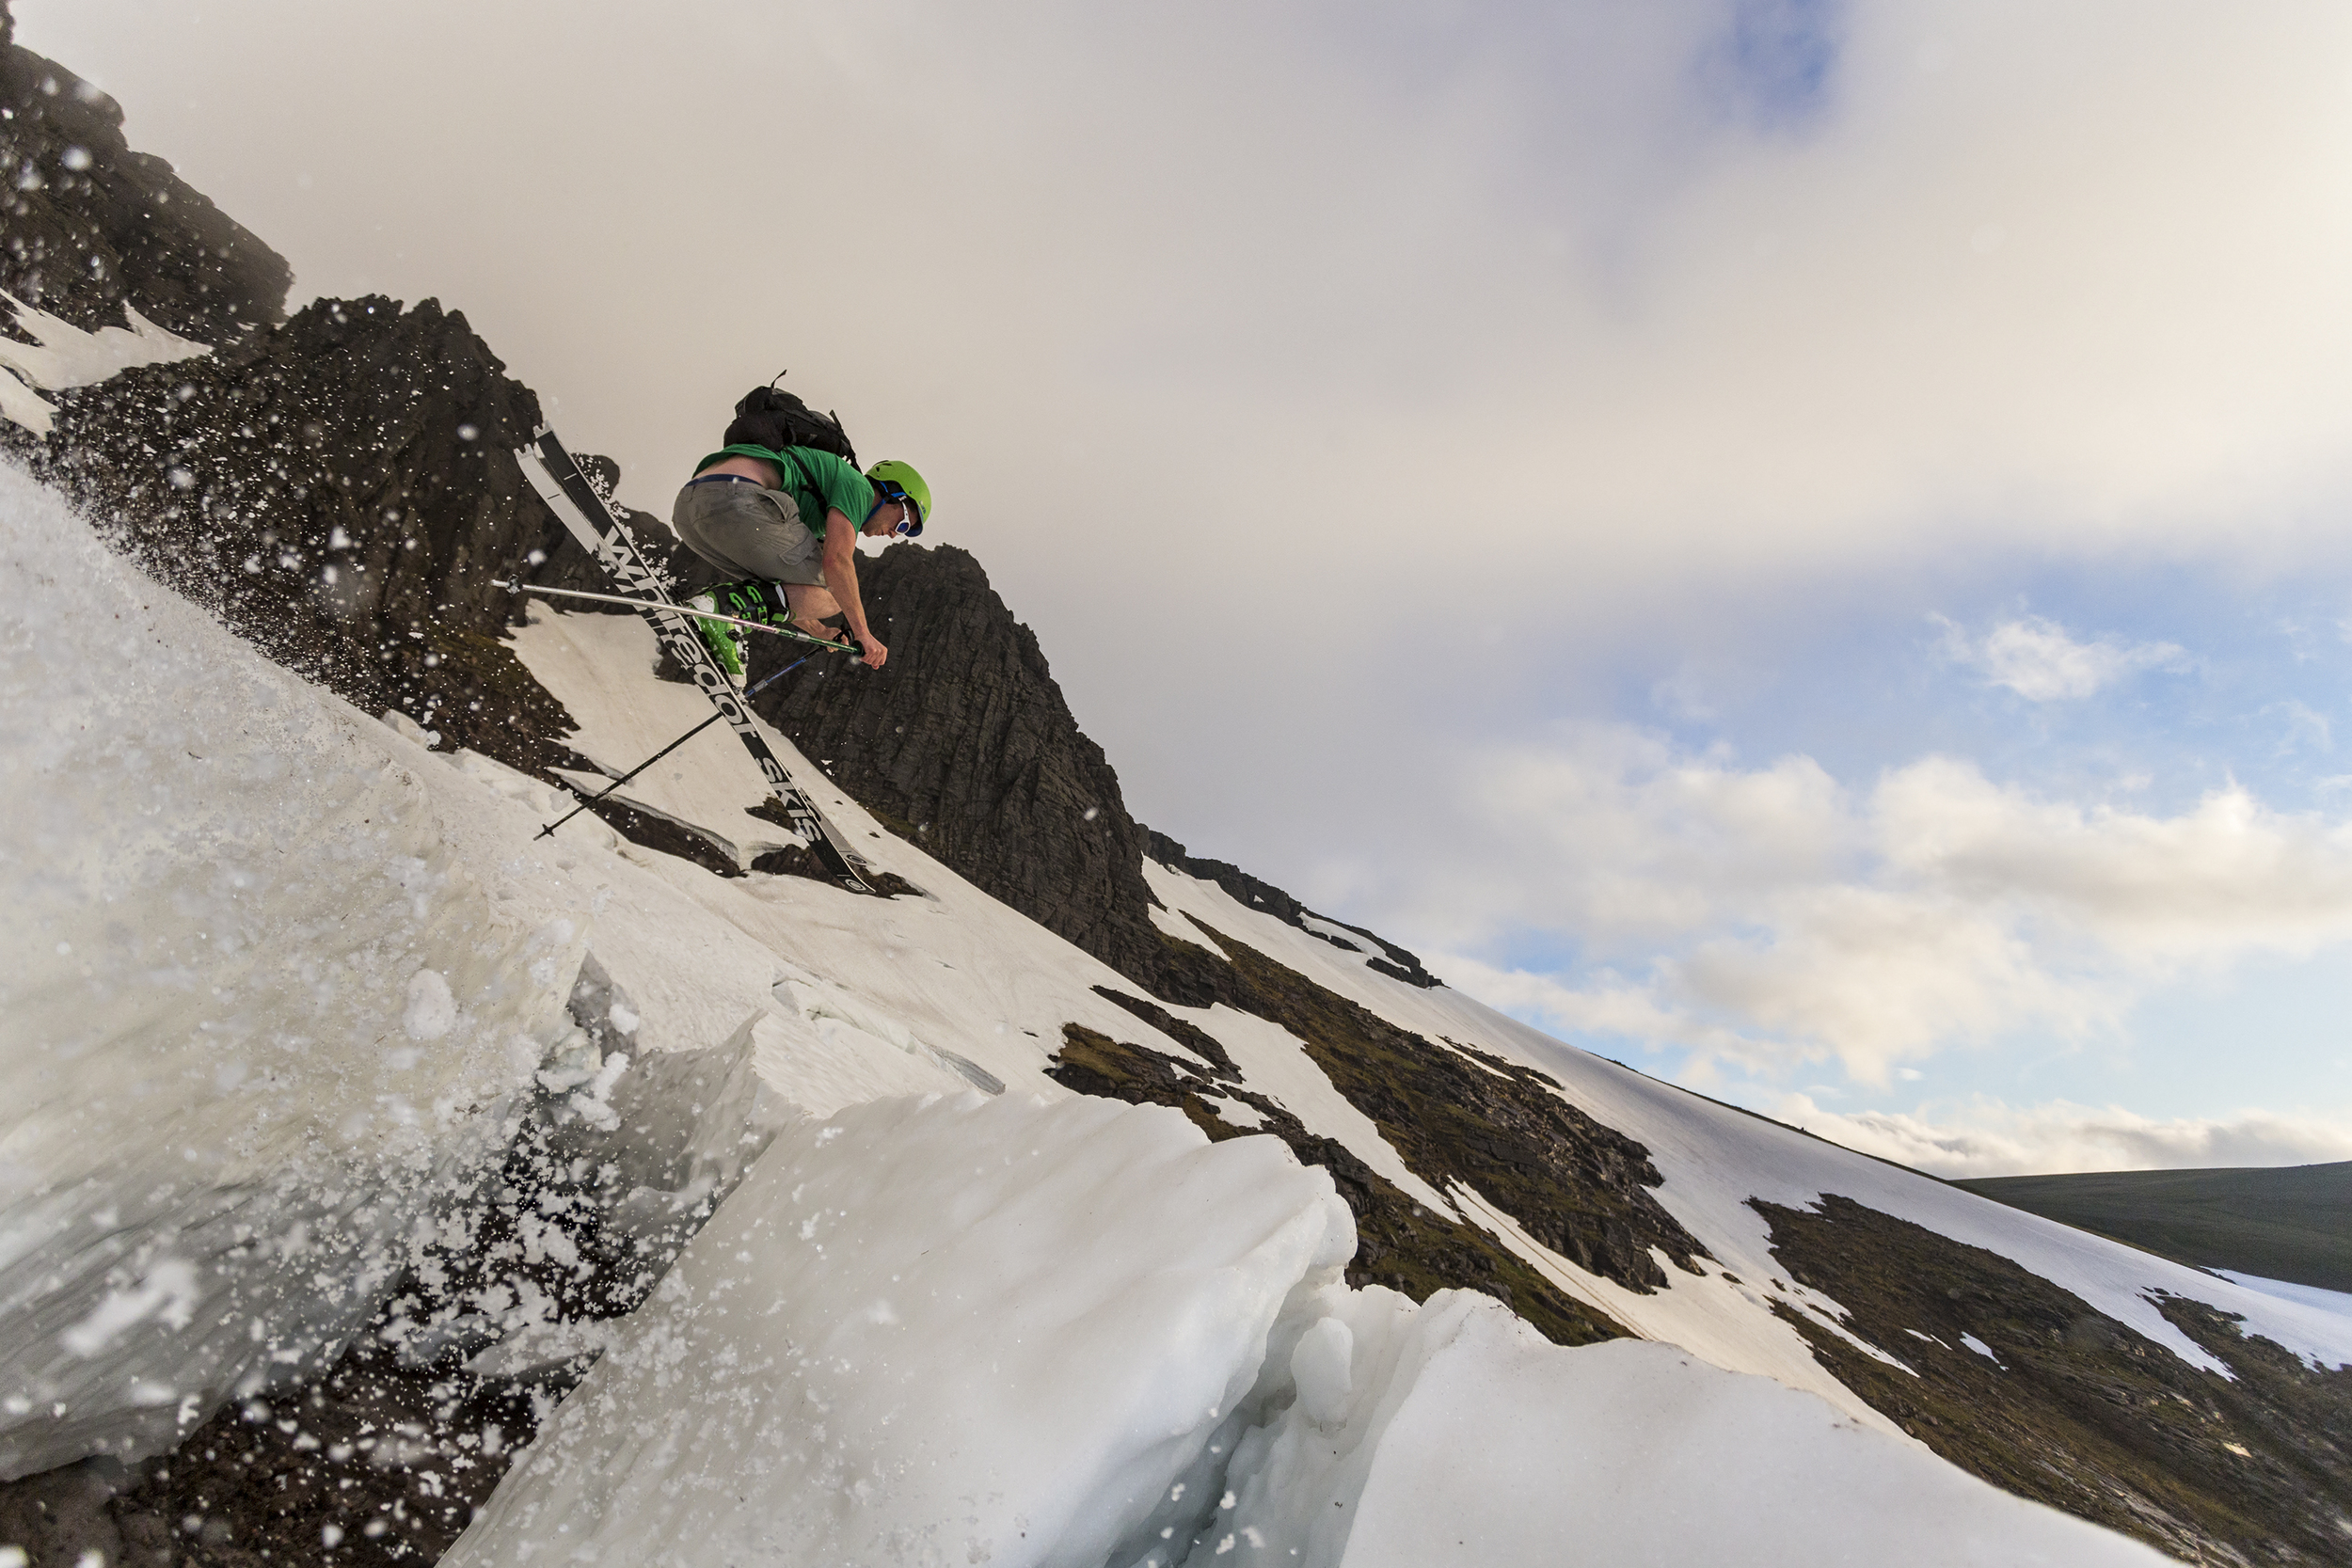 Skiing on the Great Slab, Coire an Lochain